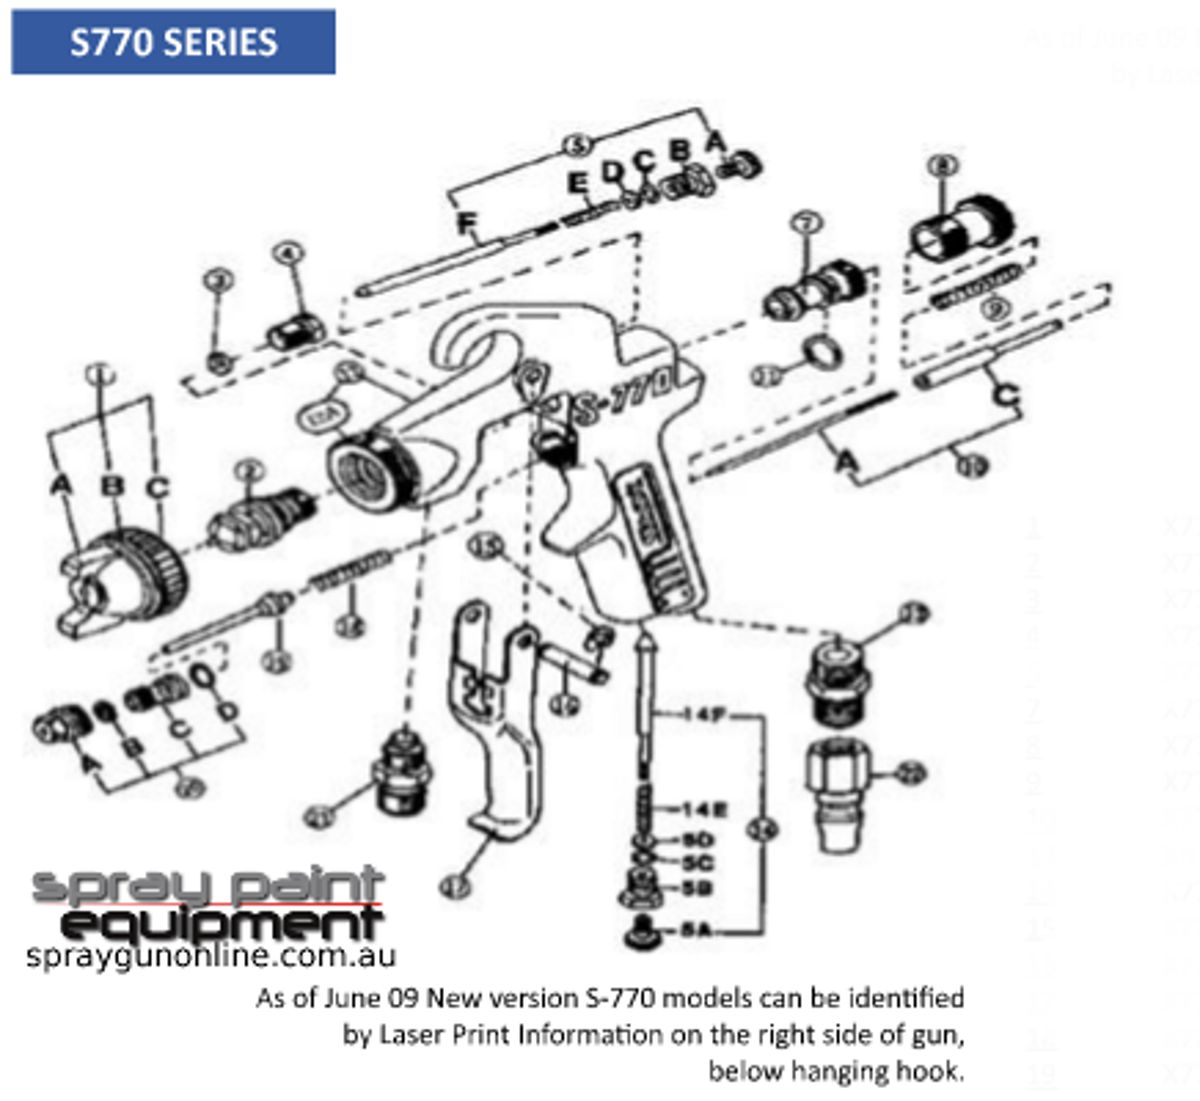 Spare poarts schematic for Star S770 spray guns